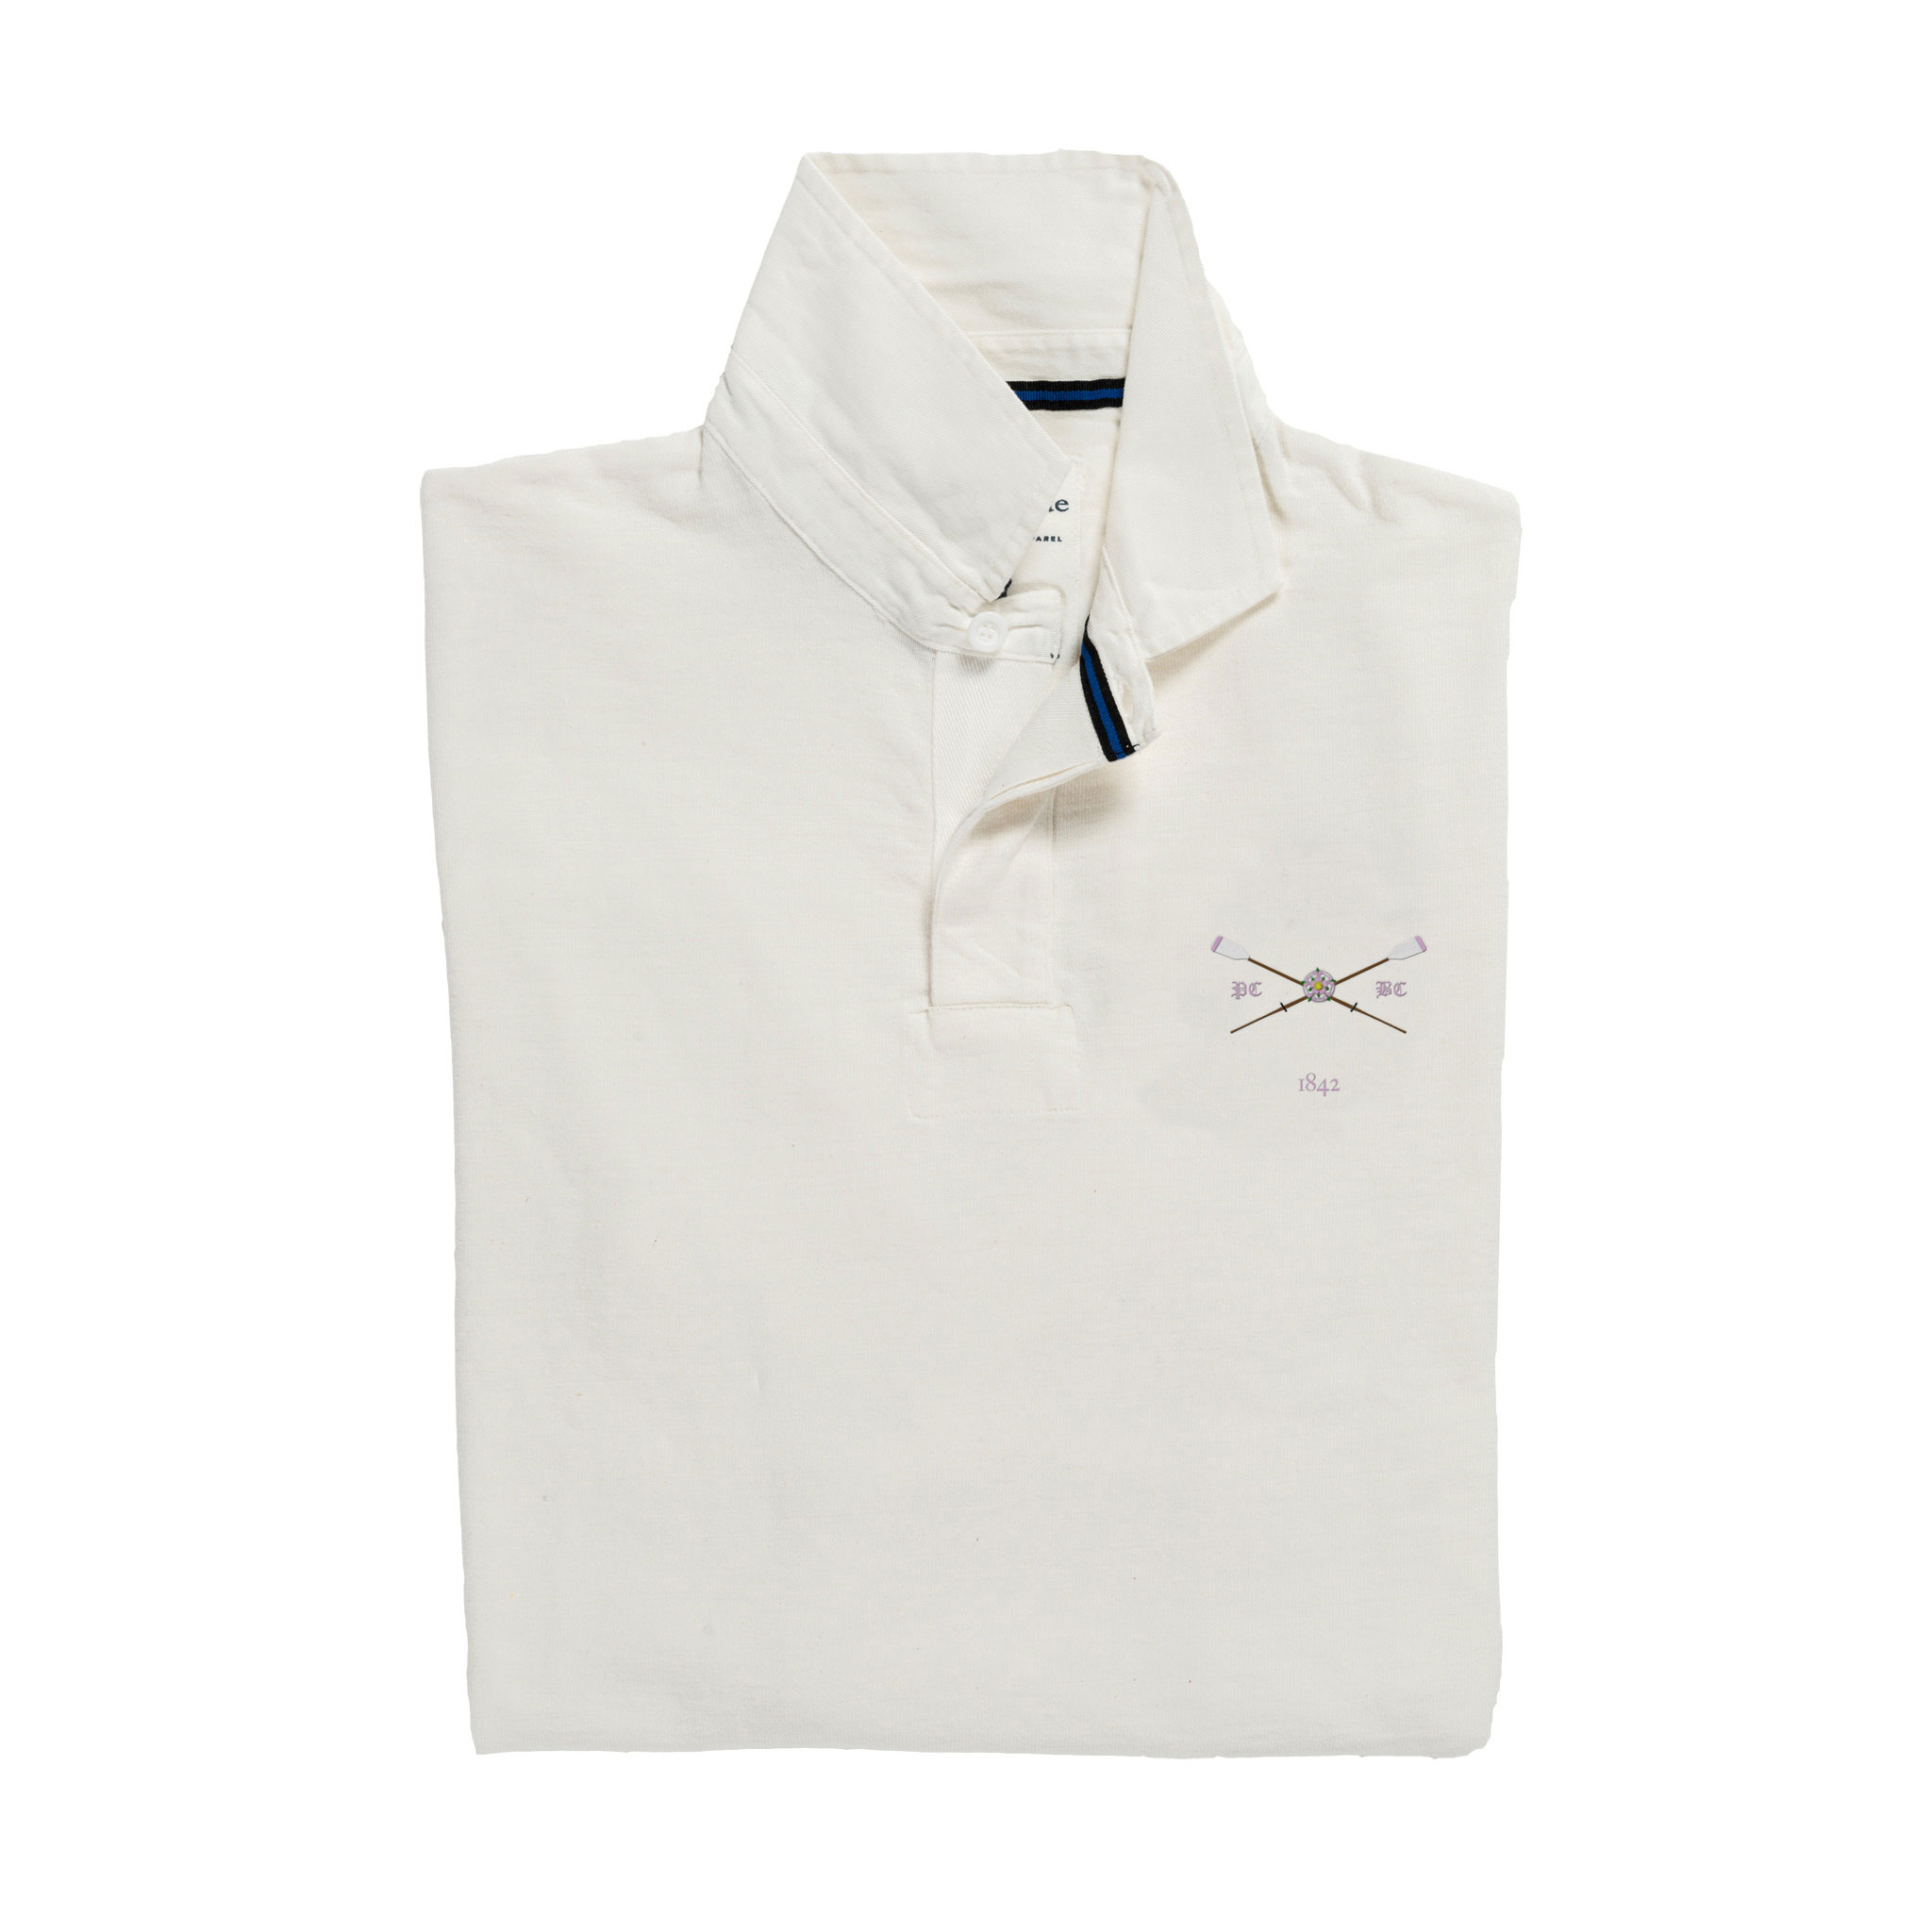 Pembroke 1842 Rugby Shirt White_Folded